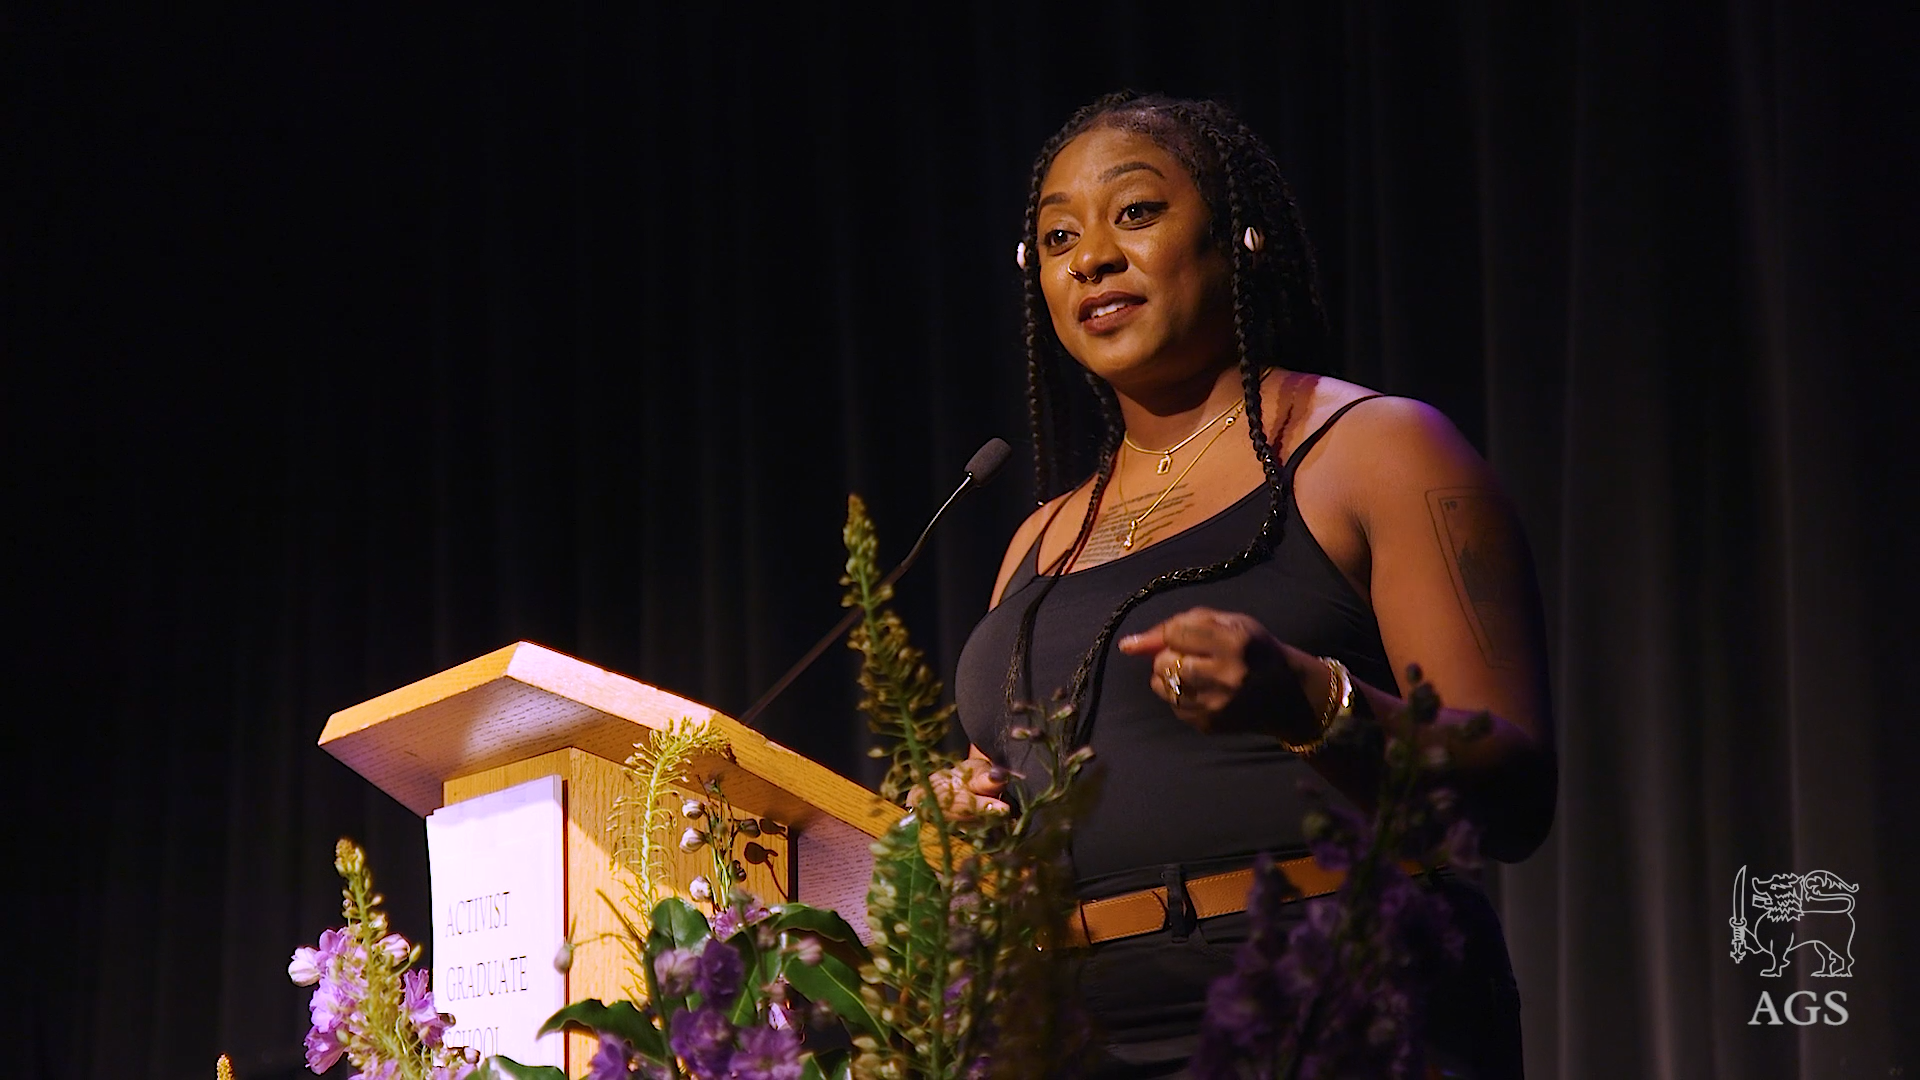 Alicia Garza, co-creator of Black Lives Matter